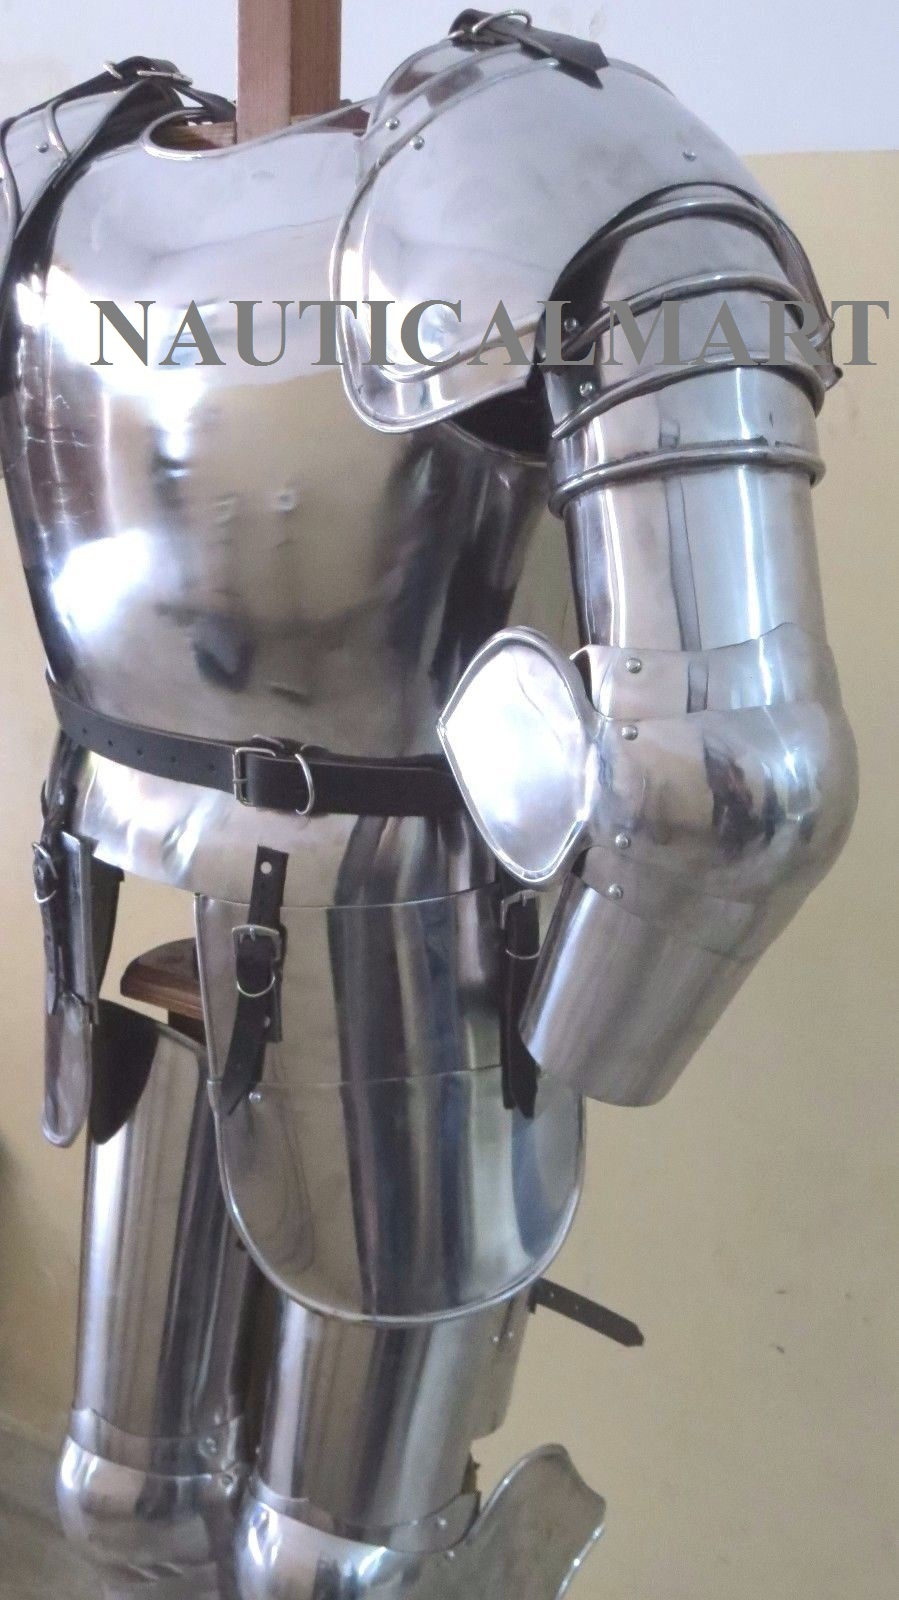 Primary image for Medieval Knight Collectible Halloween Half Suit Of Armor By NauticalMart